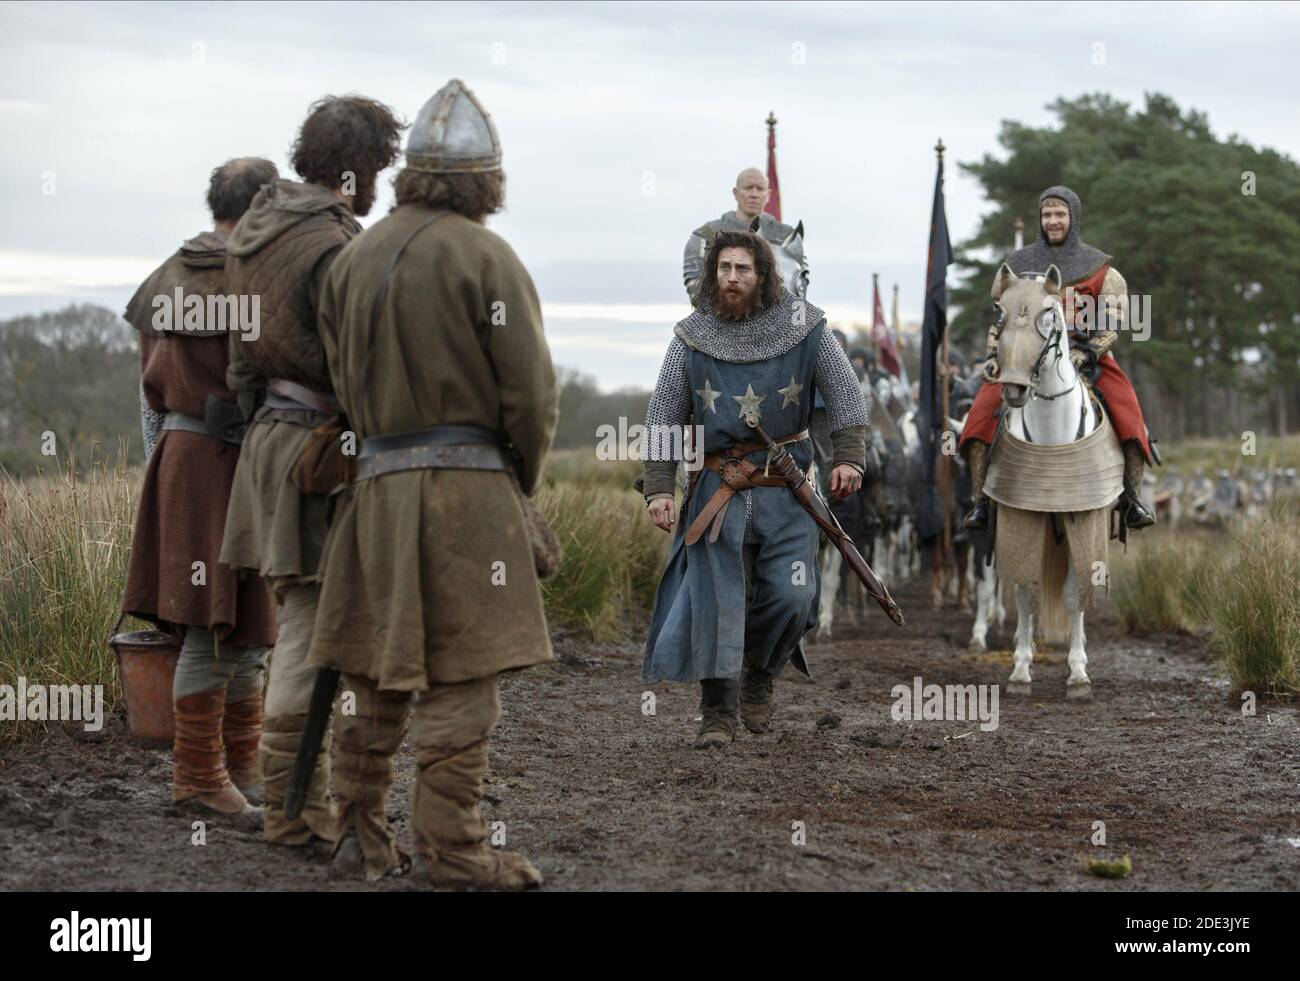 TAYLOR-JOHNSON,SPRUELL,HOWLE, OUTLAW KING, 2018 © NETFLIX Stock Photo